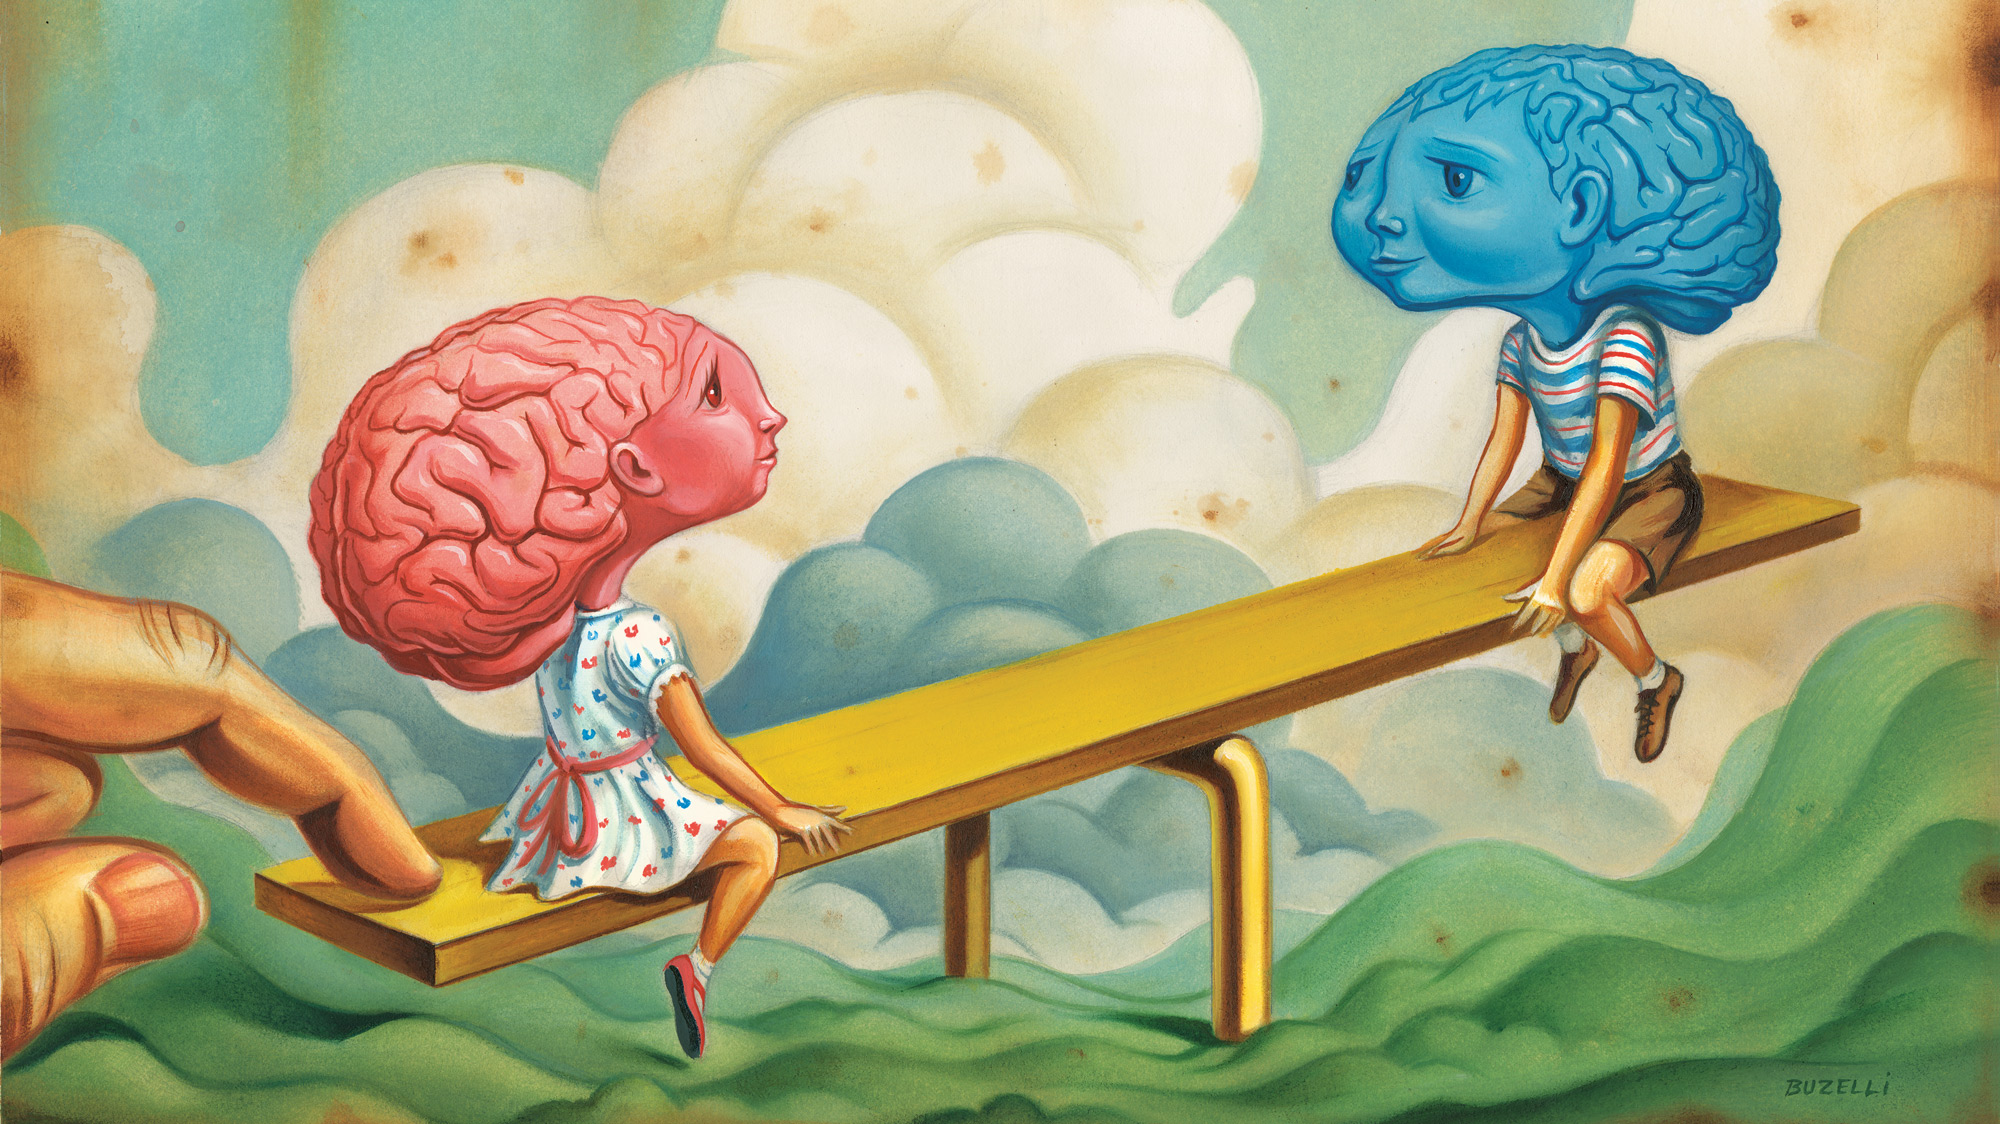 """A cartoon illustration of a pink """"girl"""" brain in a dress and a blue """"boy"""" brain in shorts facing each other on a see-saw."""